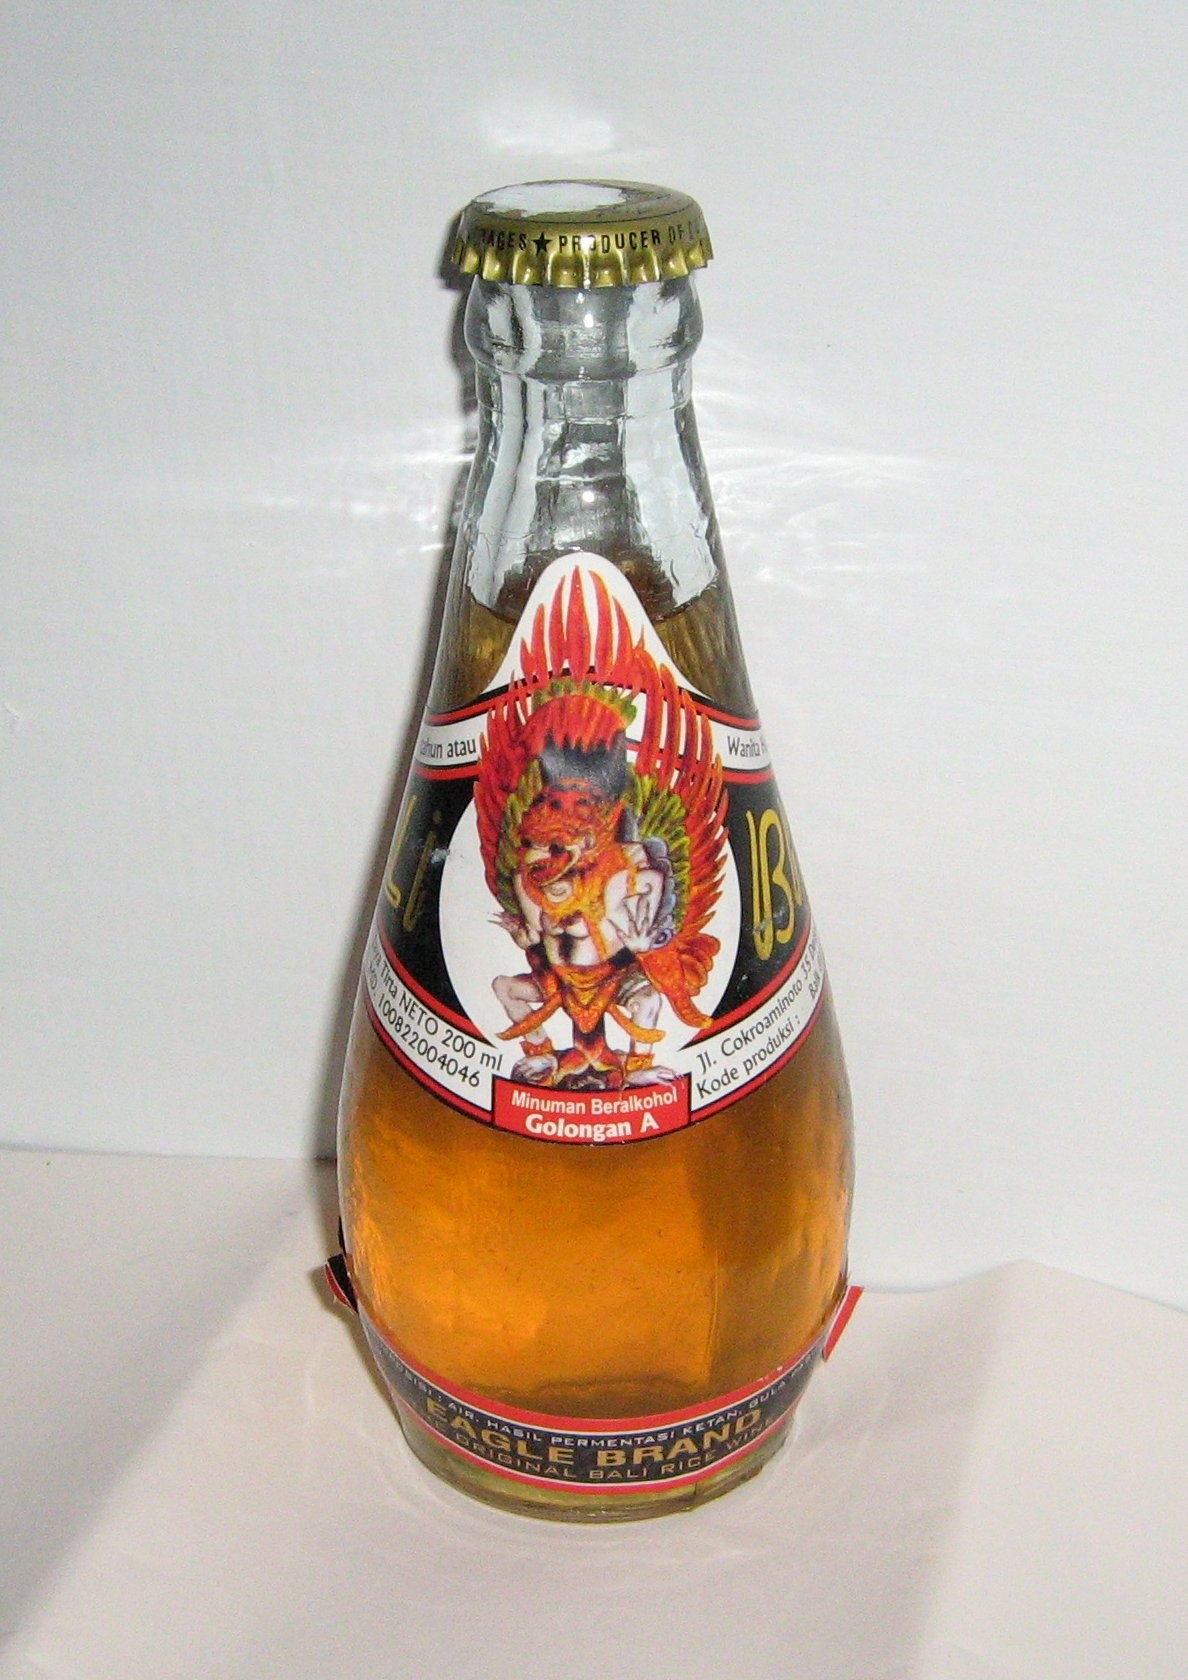 Balinese brem with alcohol content author Hegariz 2008